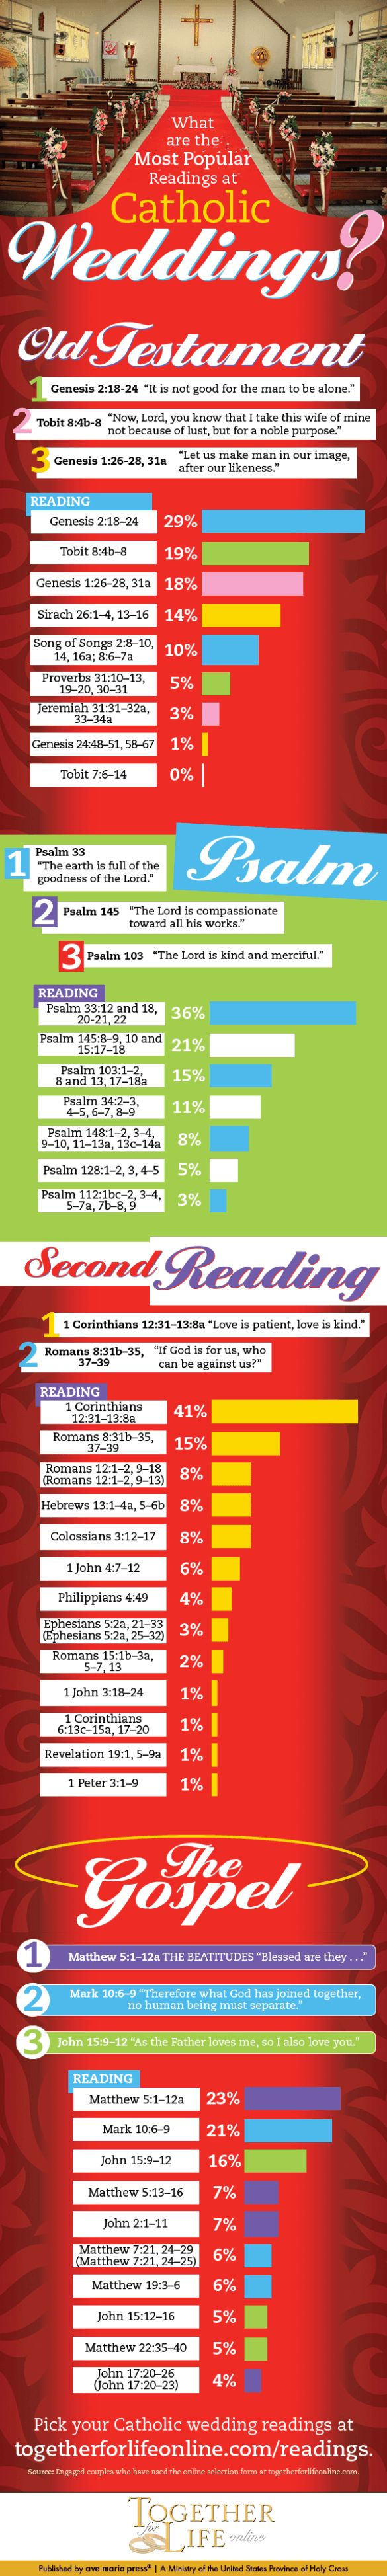 Not sure what readings to choose for your Catholic wedding ceremony? Read below to see which ones are great choices!Planning a wedding can be an overwhelming experience since there is so much to do and think about! Catholic weddings are no exception. From going to your marriage preparation process to crafting your wedding ceremony, there's ...